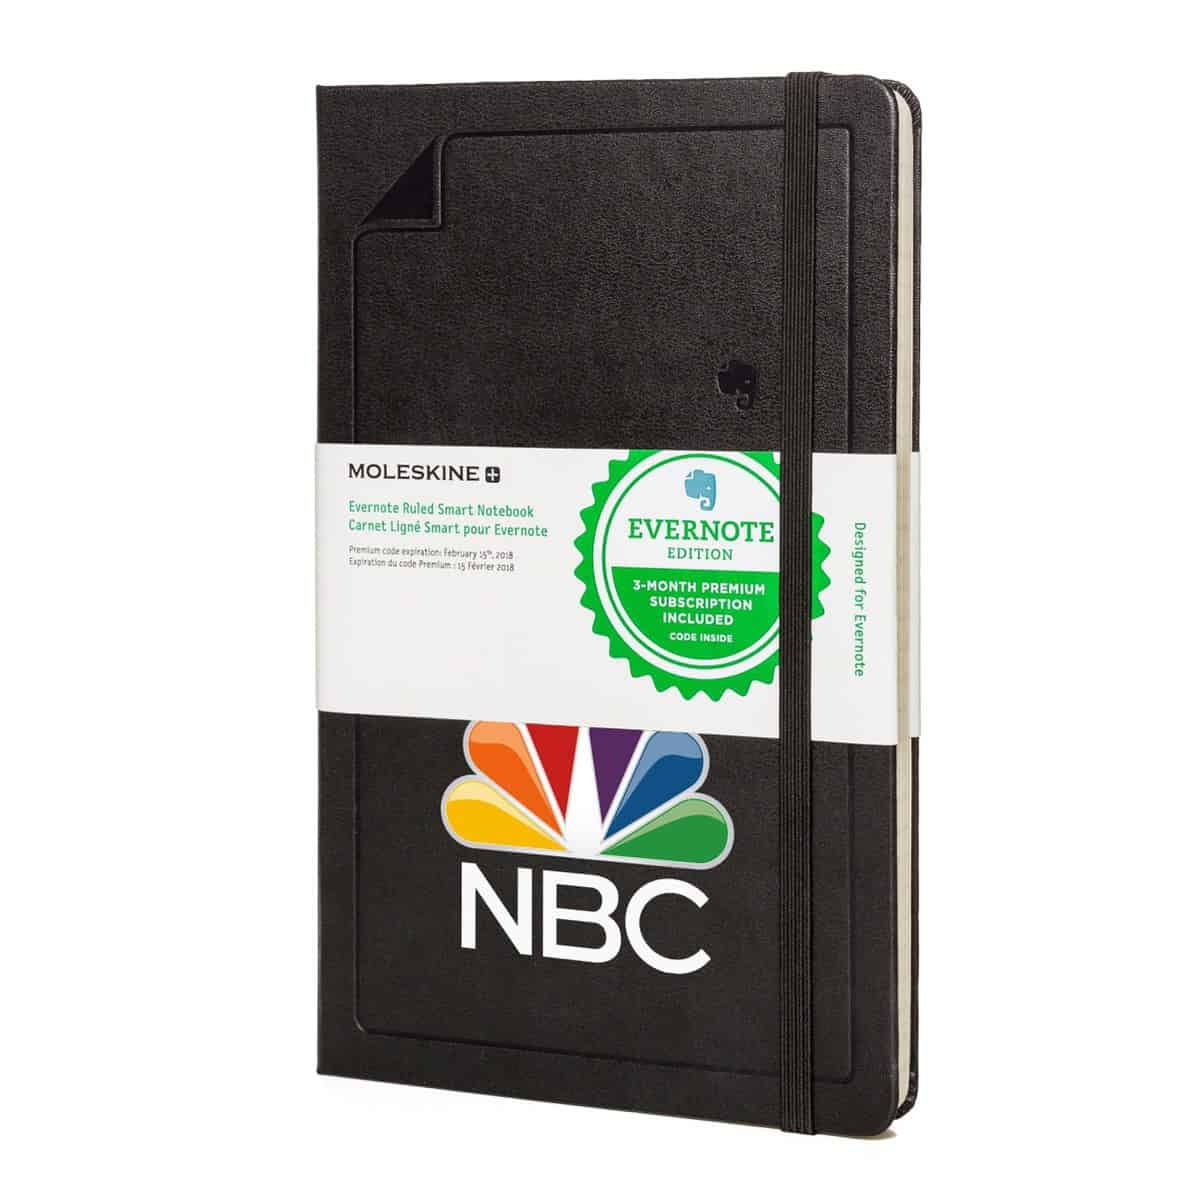 Moleskine® Evernote Notebook Black